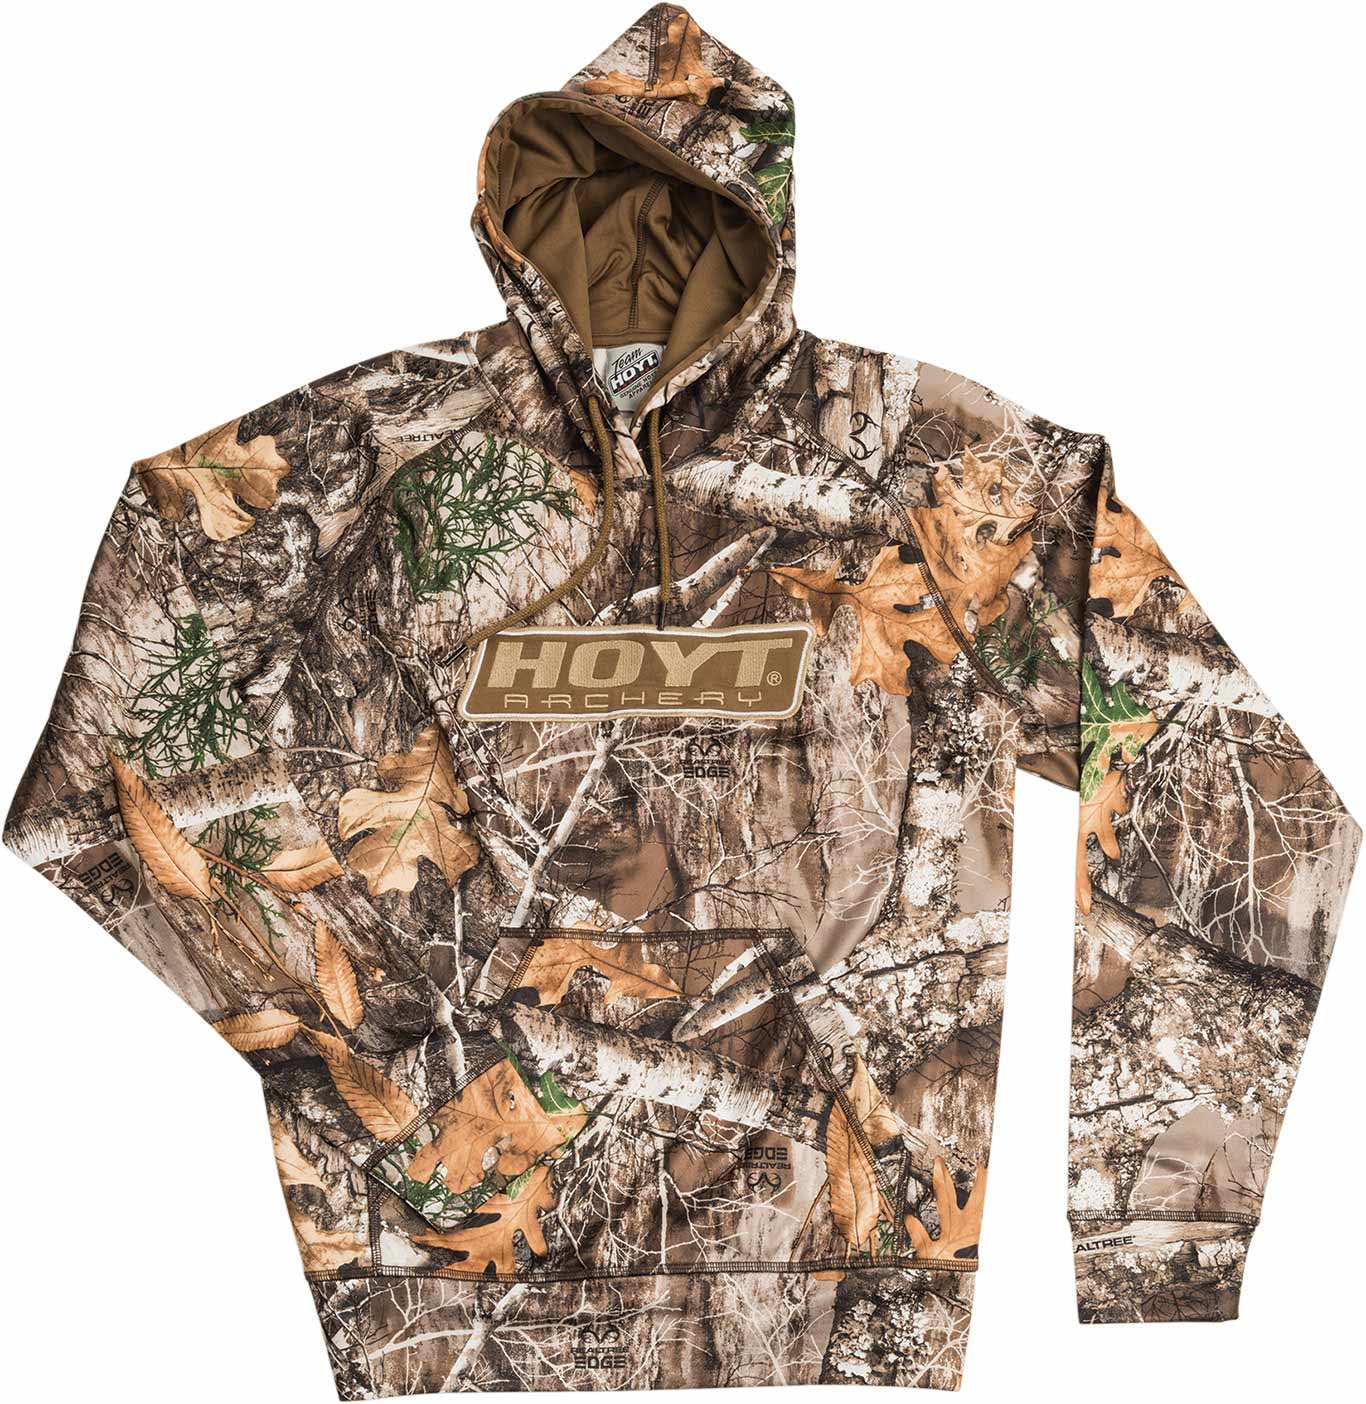 Hoyt Realtree EDGE Hoody